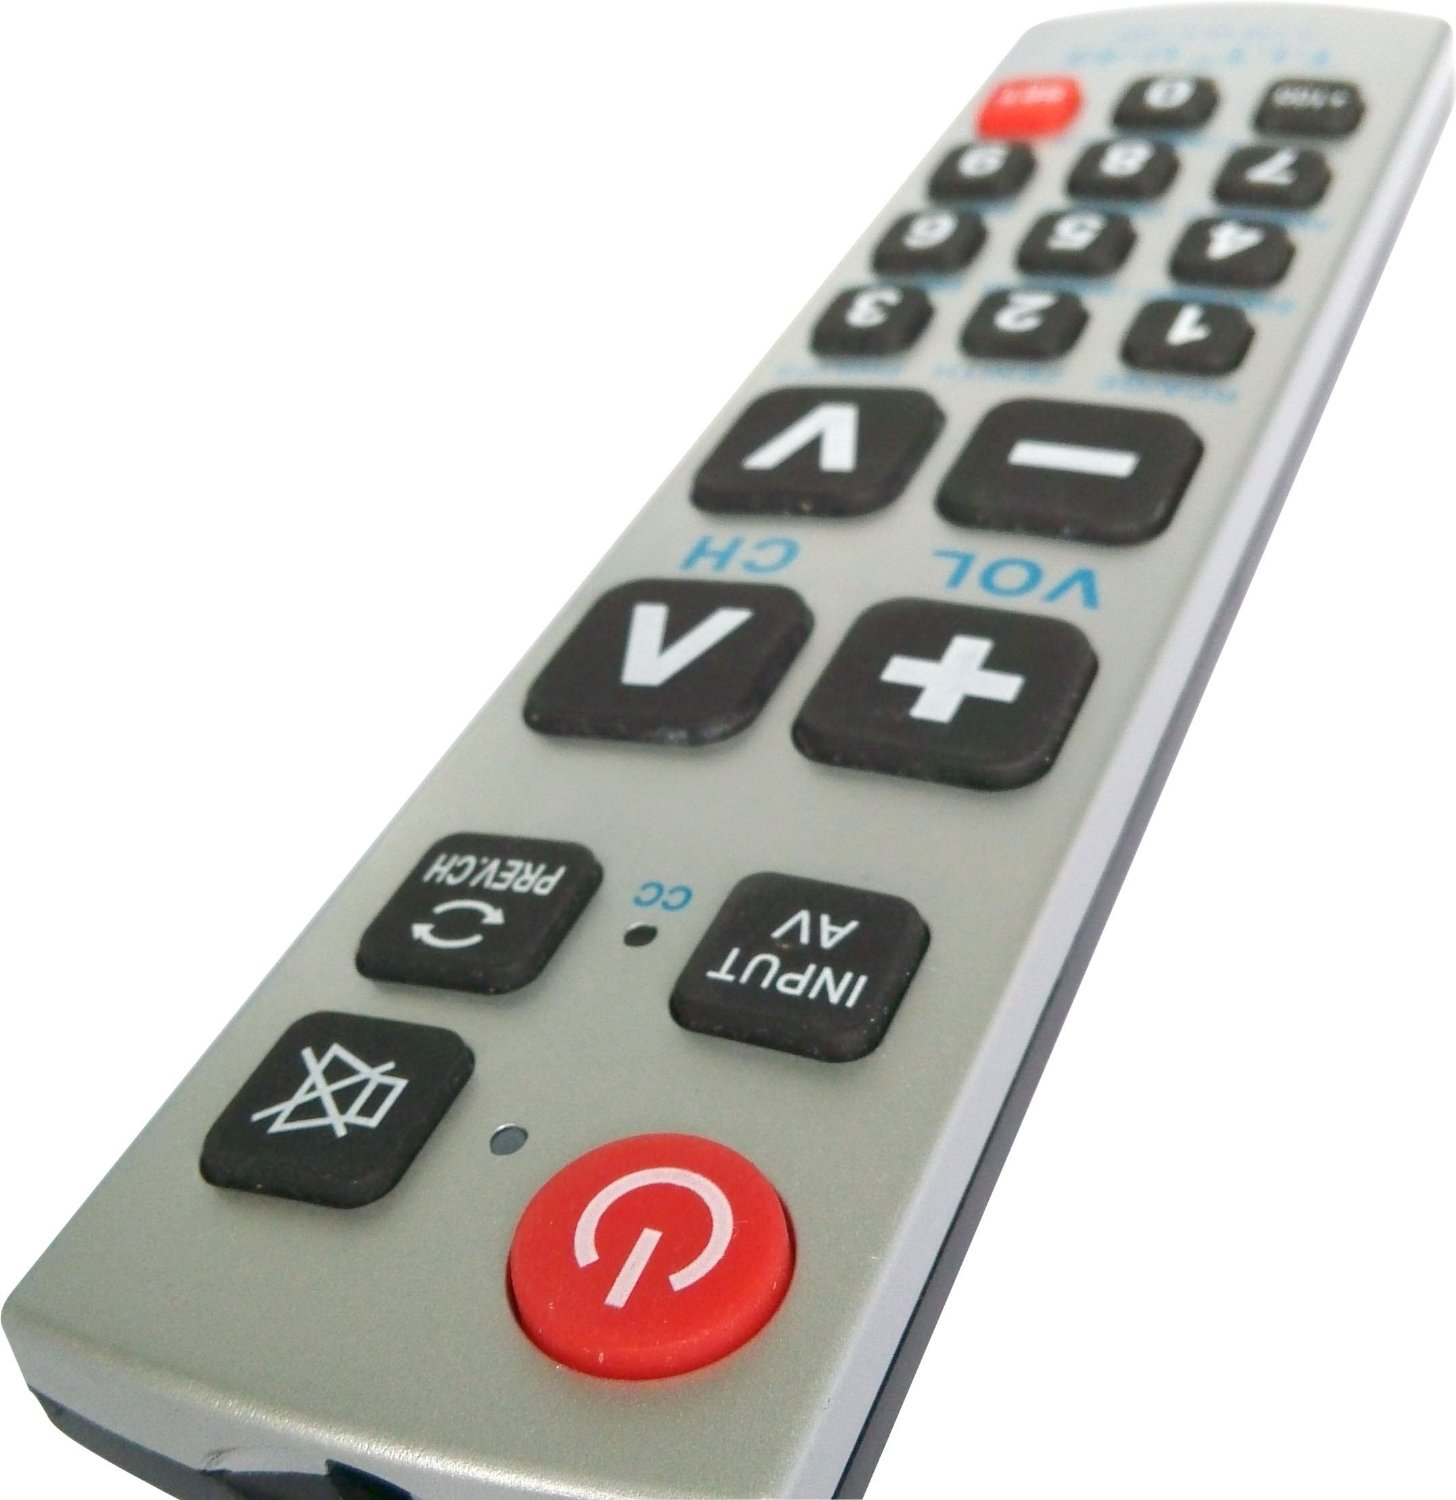 Big Button Remote Controls